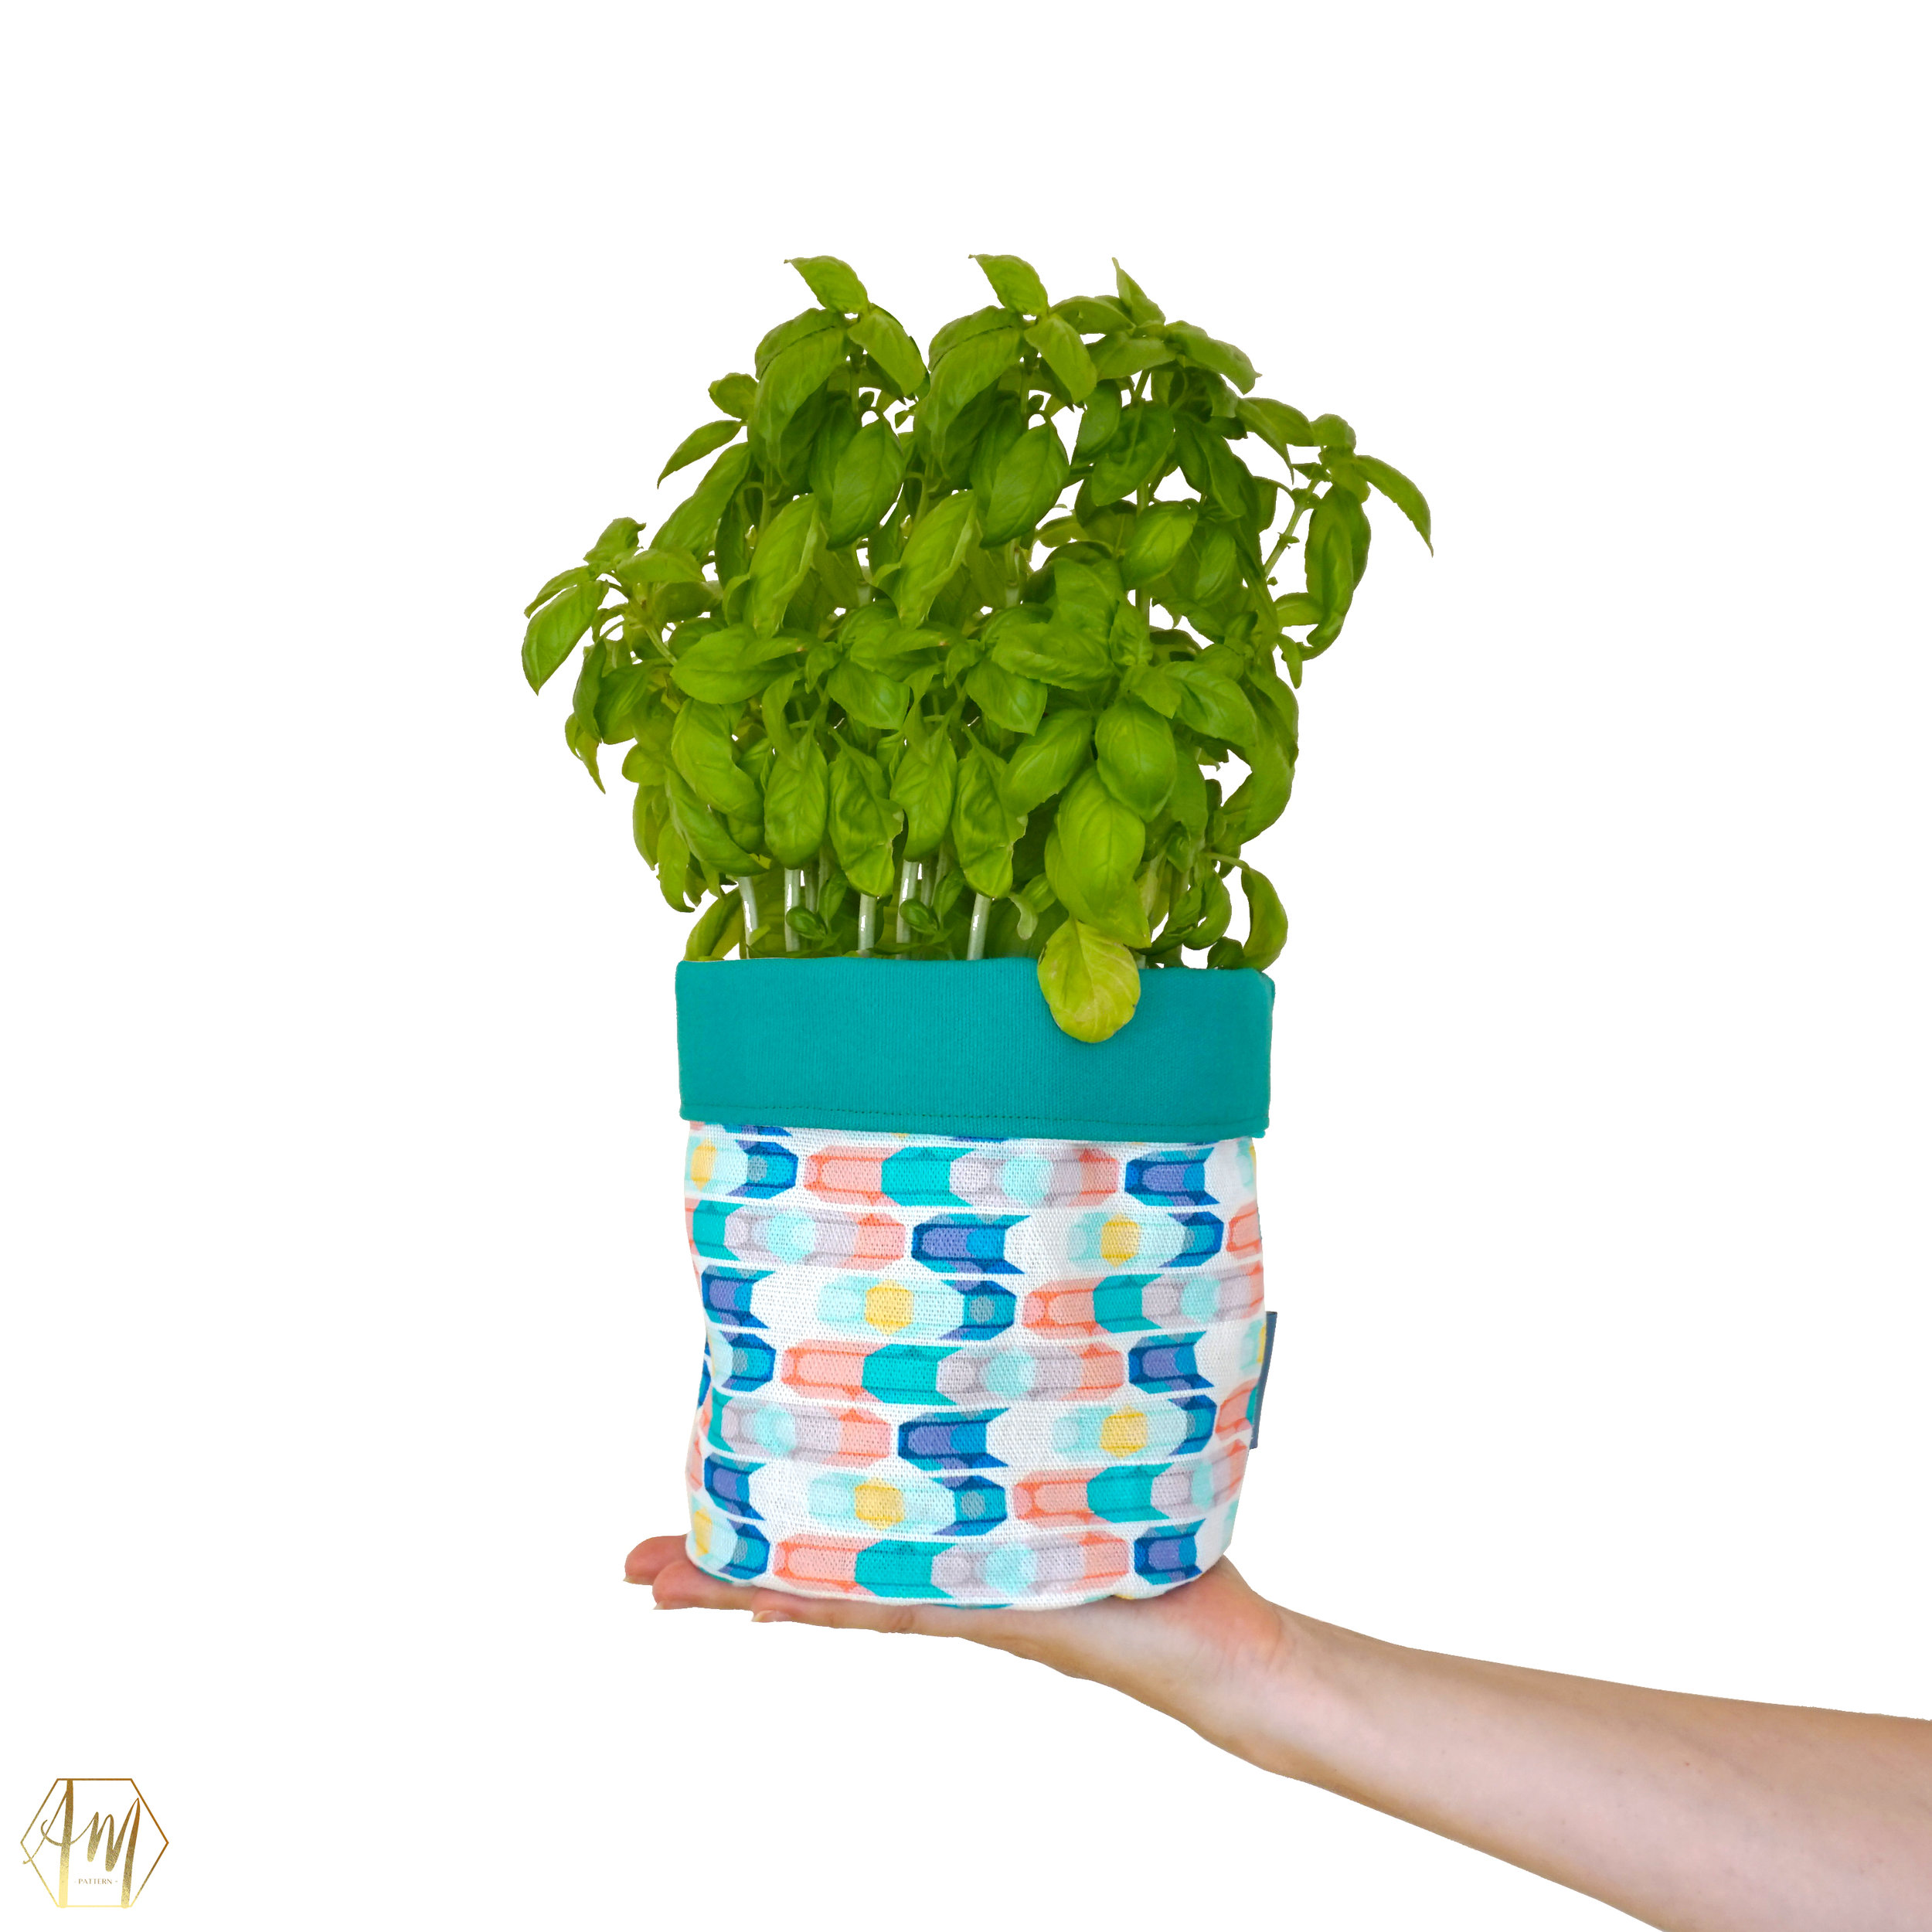 STRANGFORD LOUGH LINEN PLANT POT COVERS | APRIL MAWHINNEY DESIGN STUDIO | ILLUSTRATION | IRISH DESIGN | NORTHER IRELAND DESIGN | PRINT STUDIO | GIFTWARE | HOME DECOR